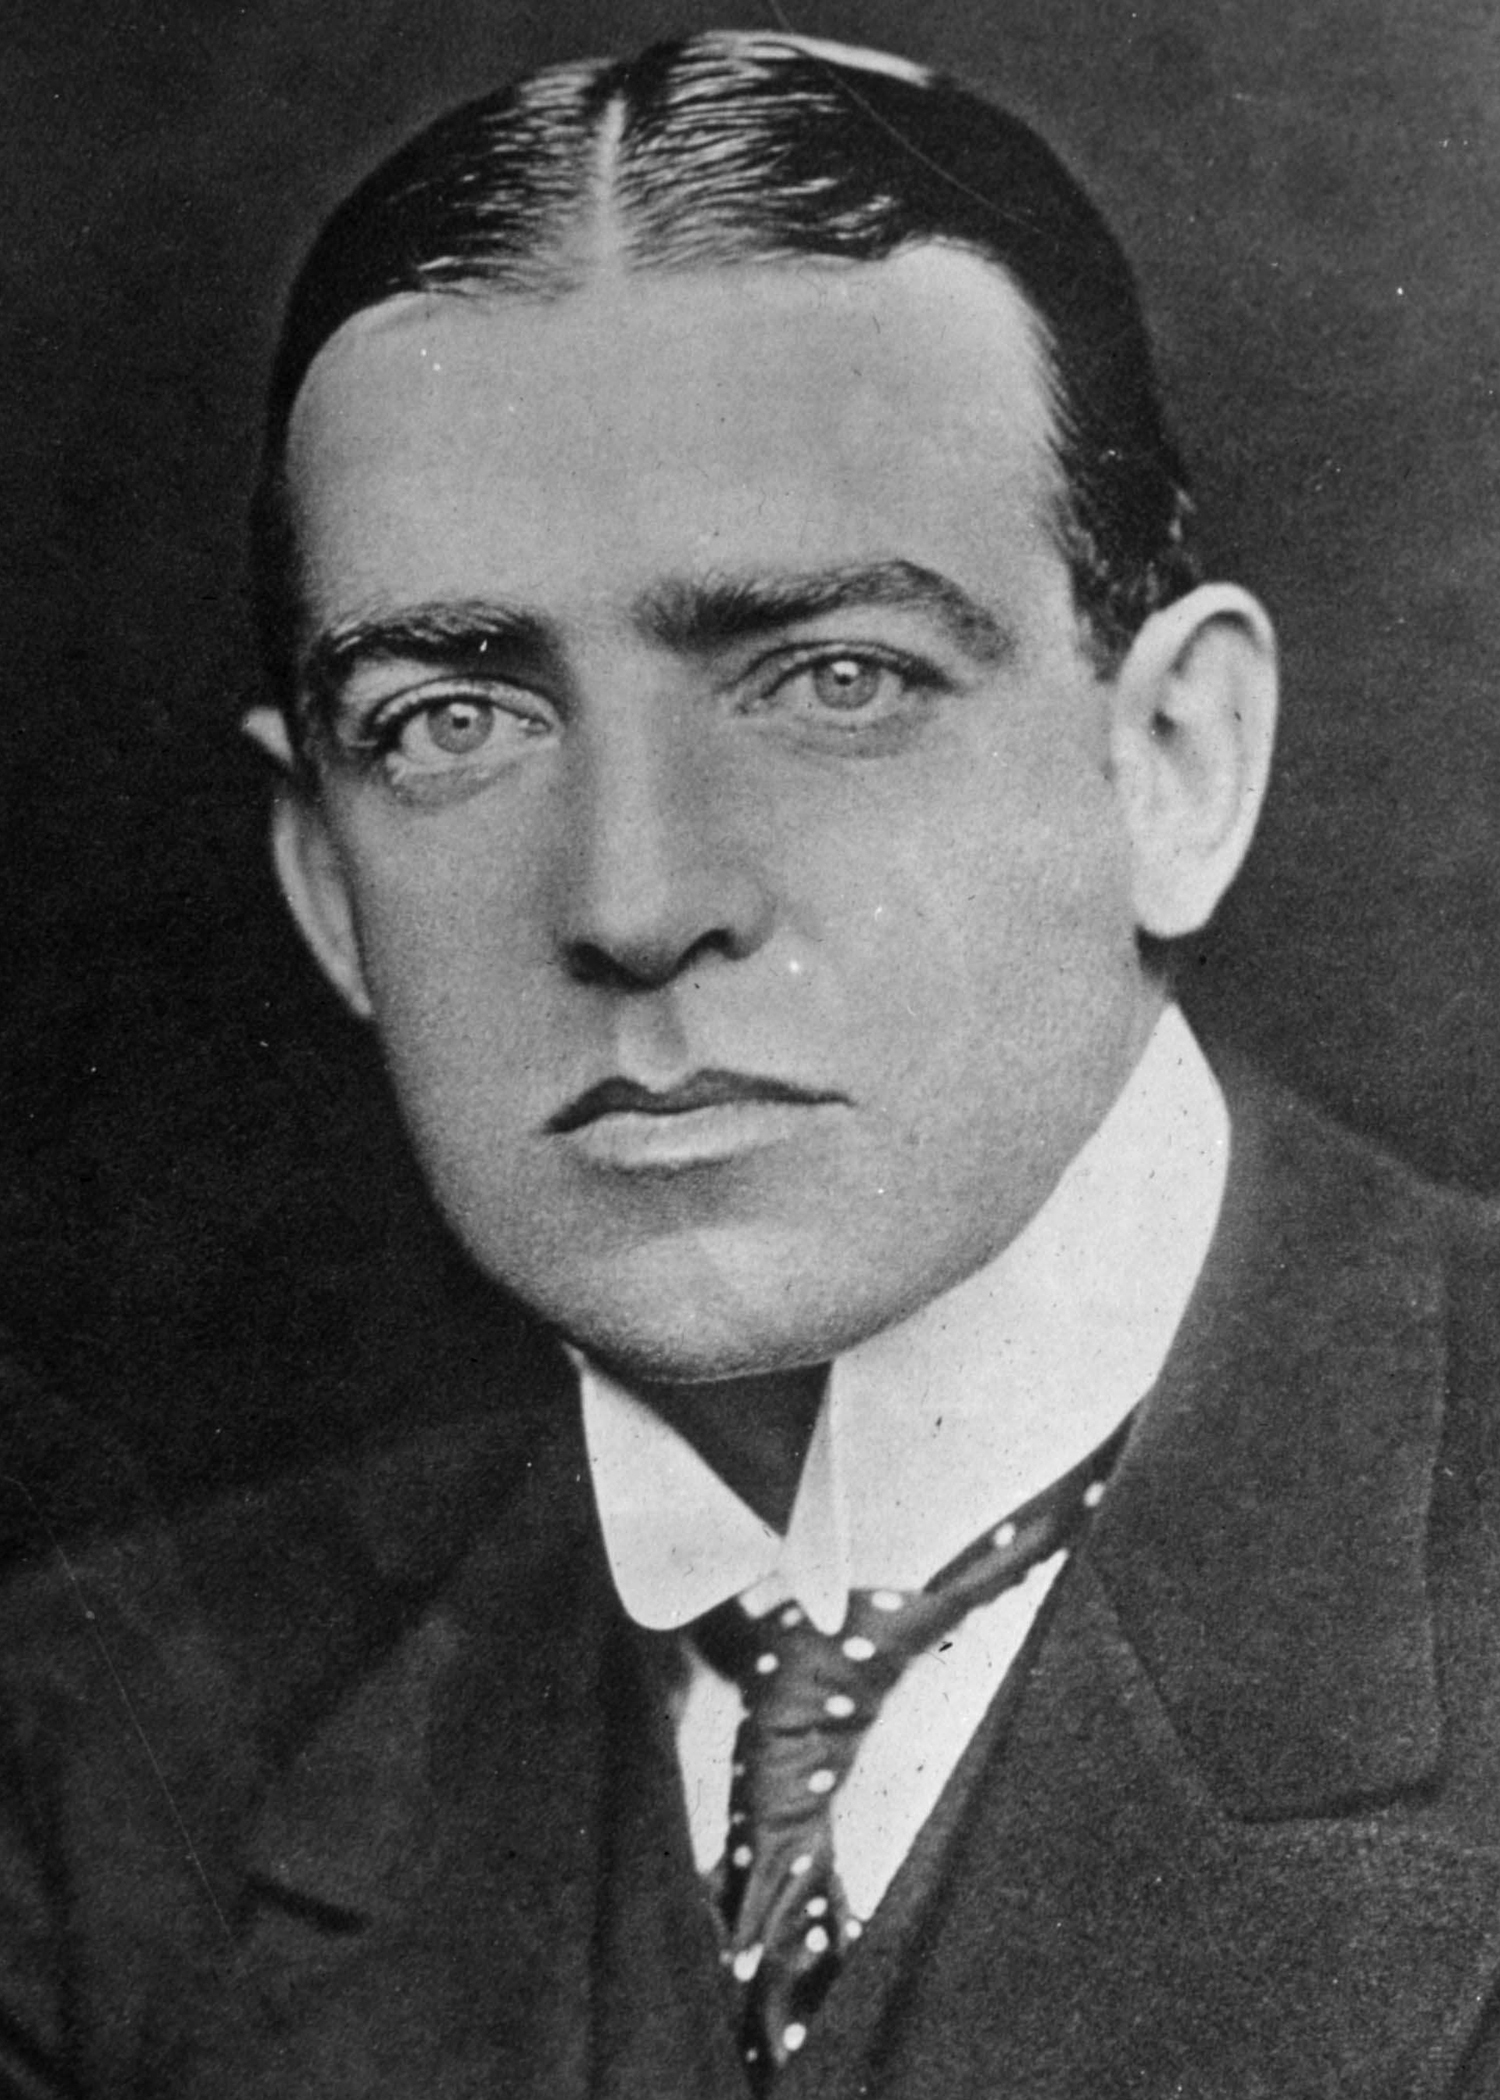 Ernest Shackleton - Polar Explorer